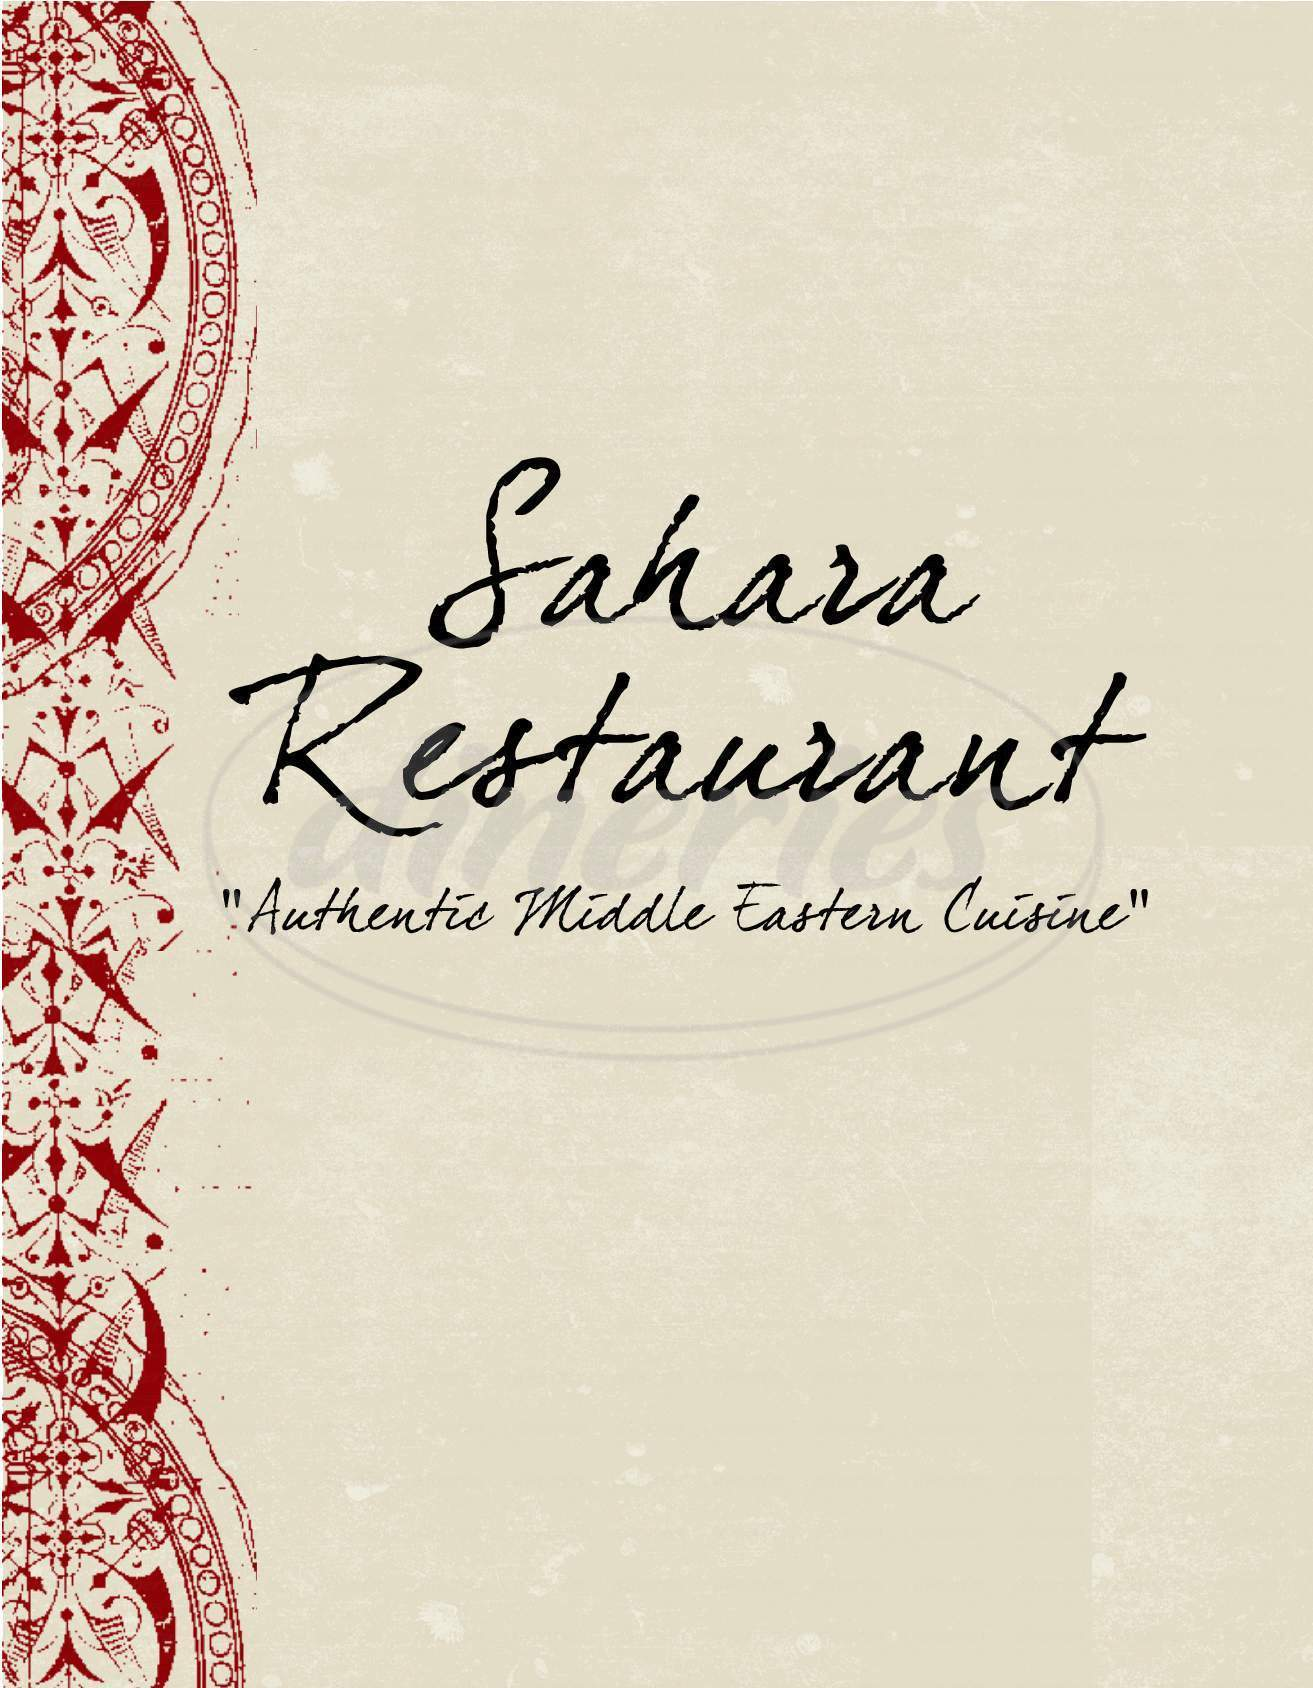 menu for Sahara Restaurant